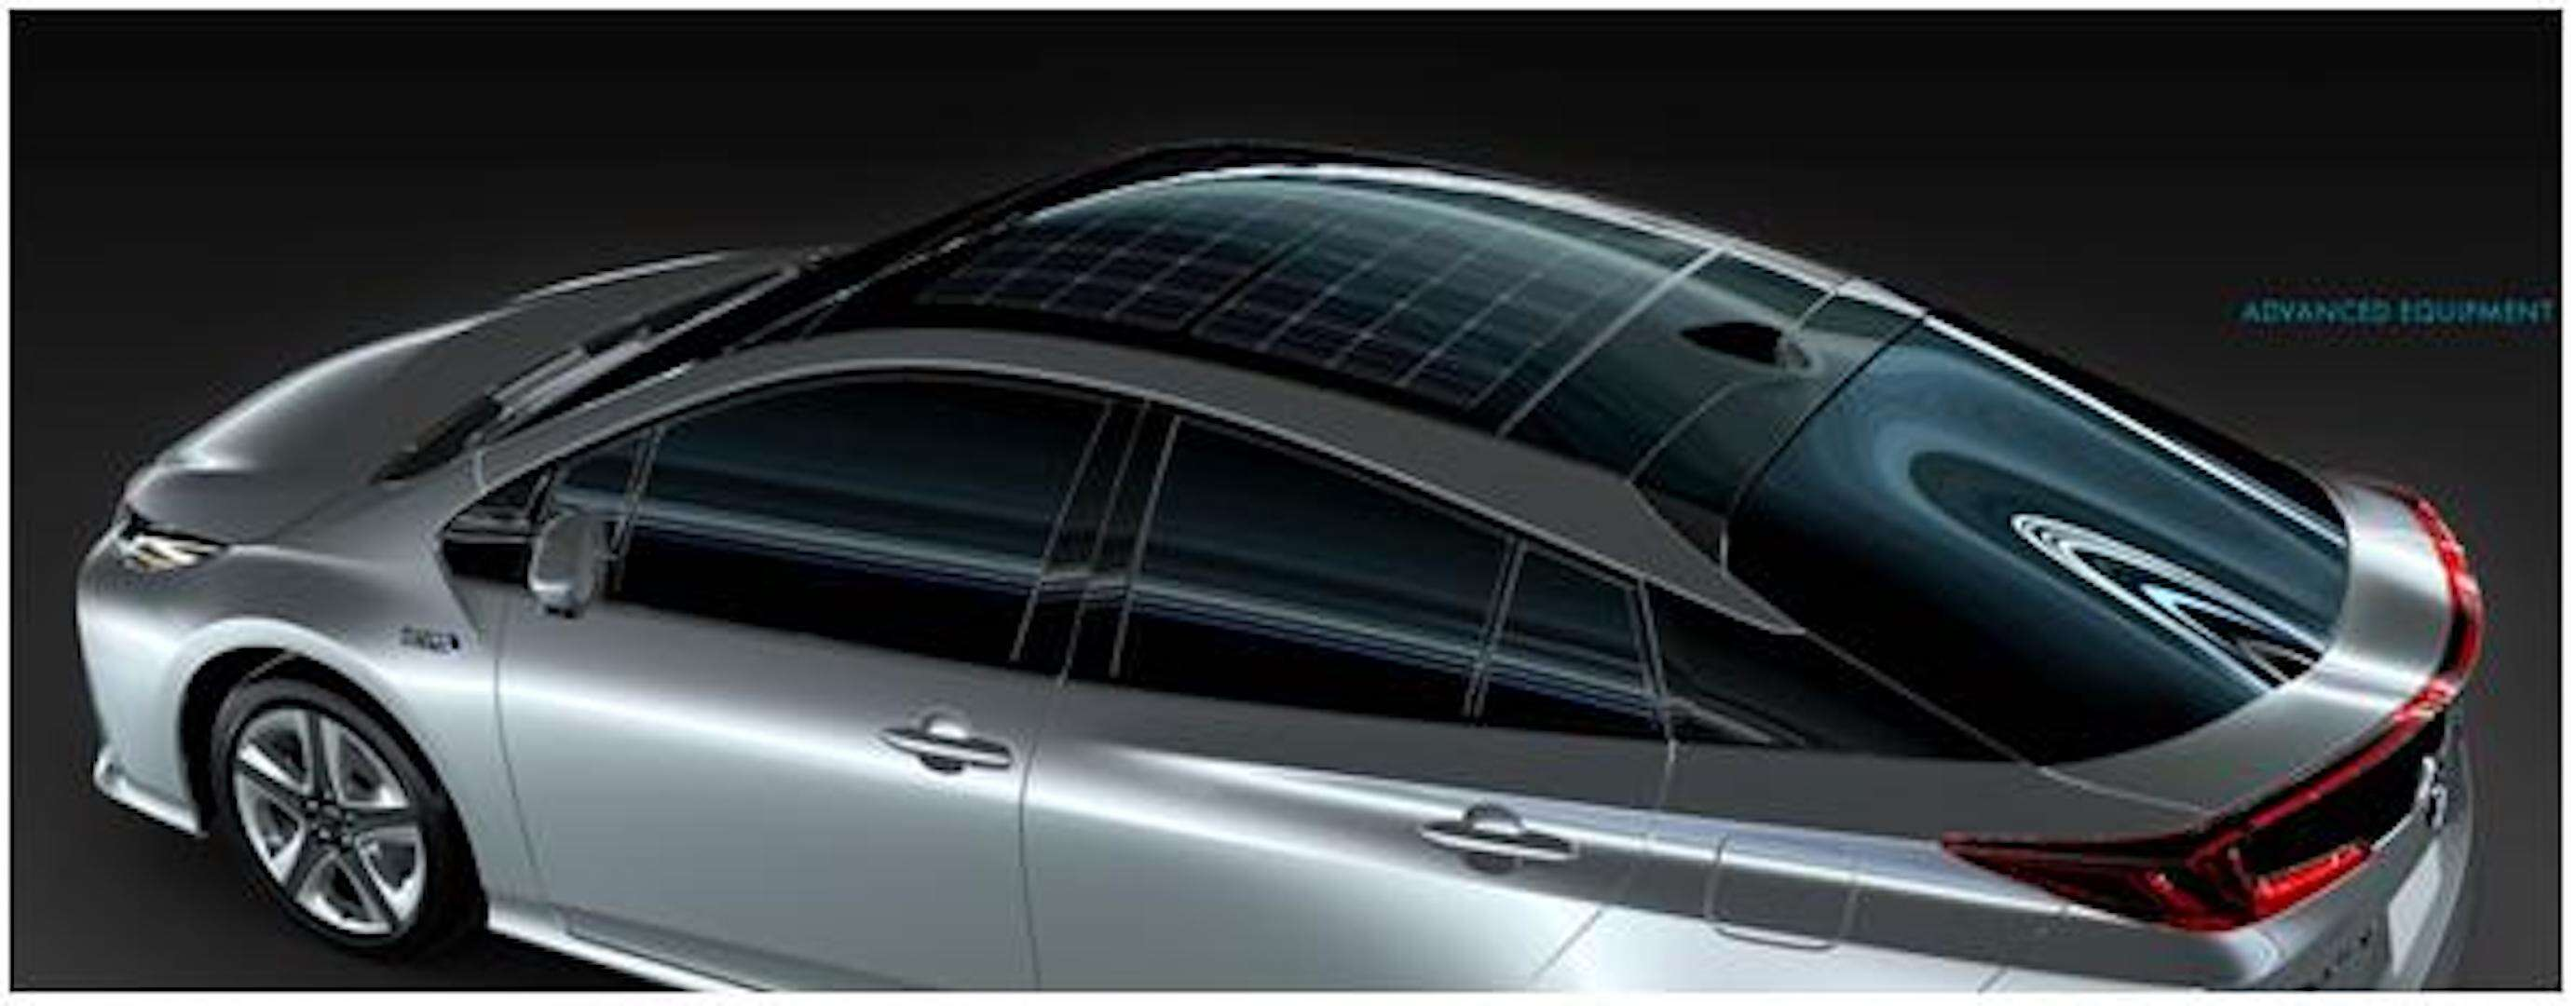 Panasonic Unveils Solar Roof That May Appear On The Tesla